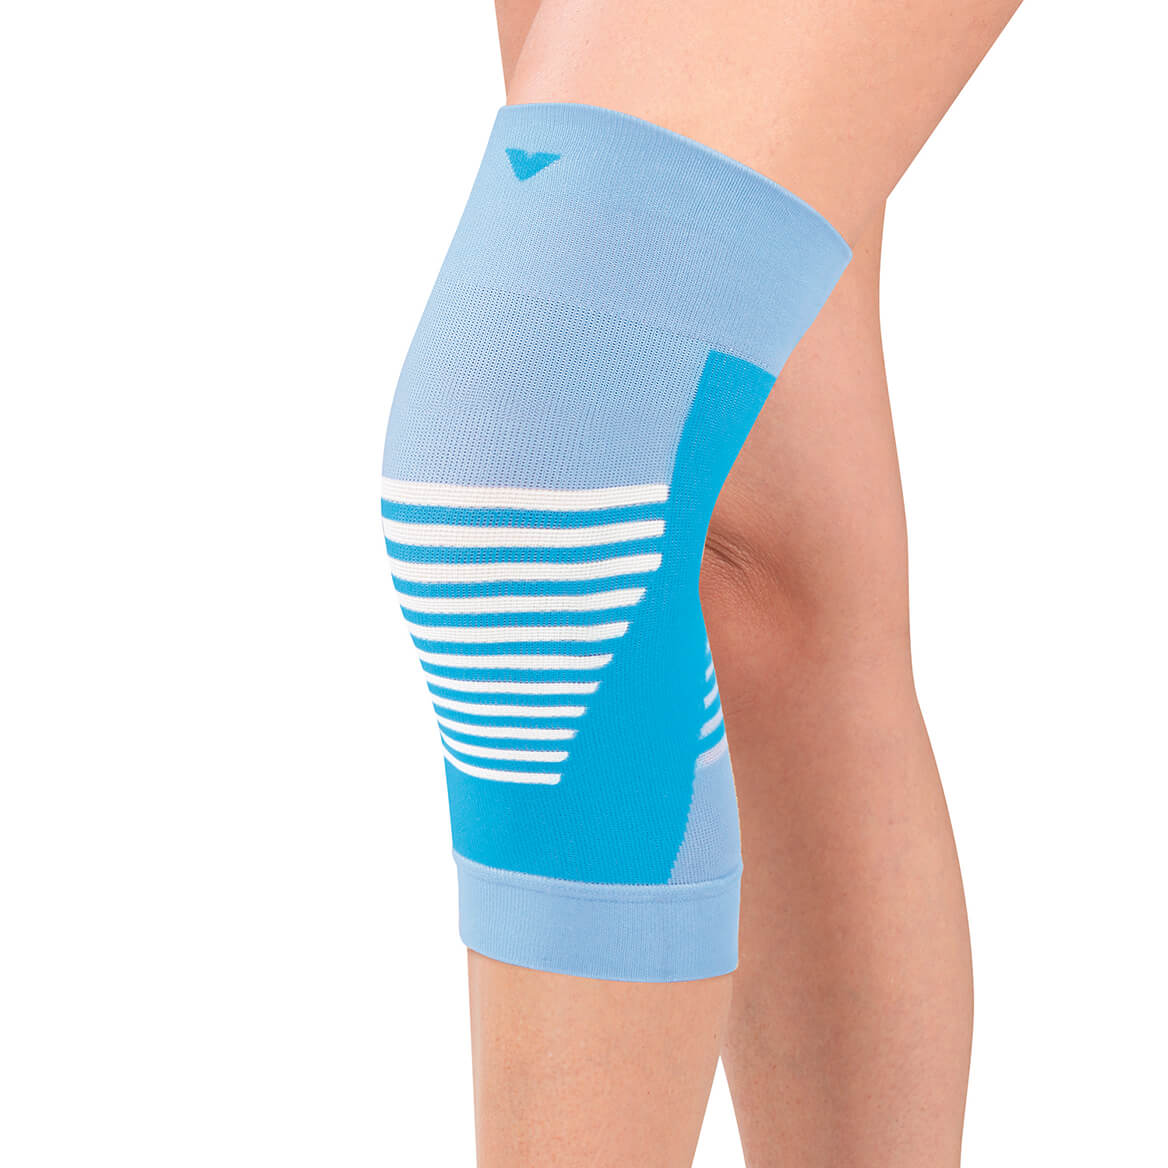 Kinetic Knee Support-370302